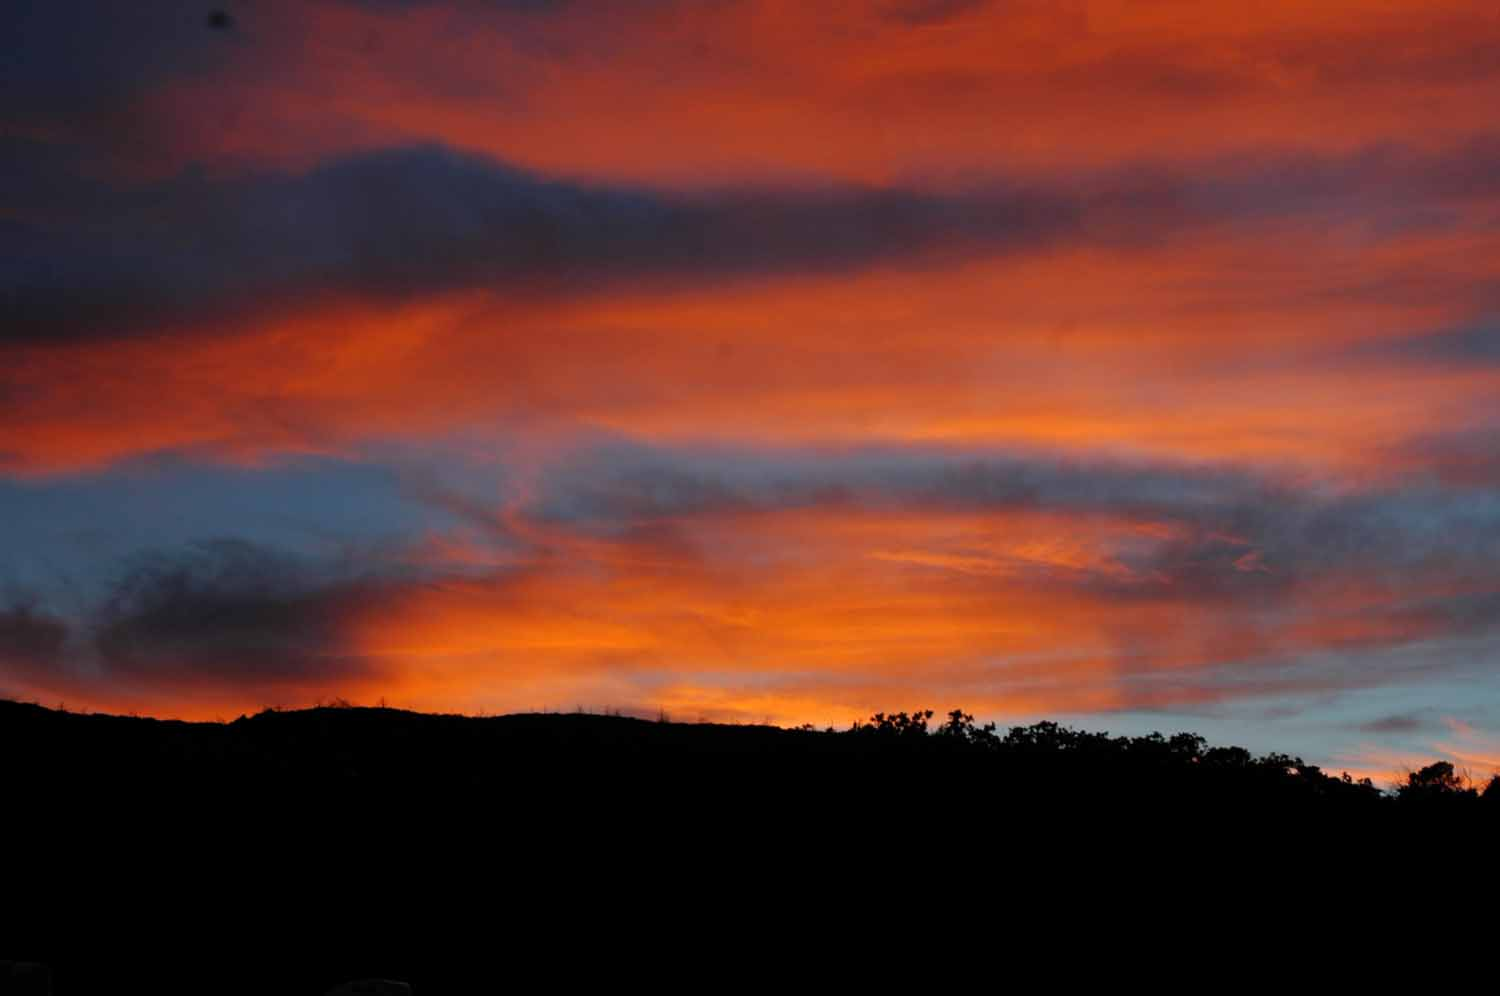 Not many good sunsets...this one was at the RV park Mesa Verde - Sun going down behind the mountain